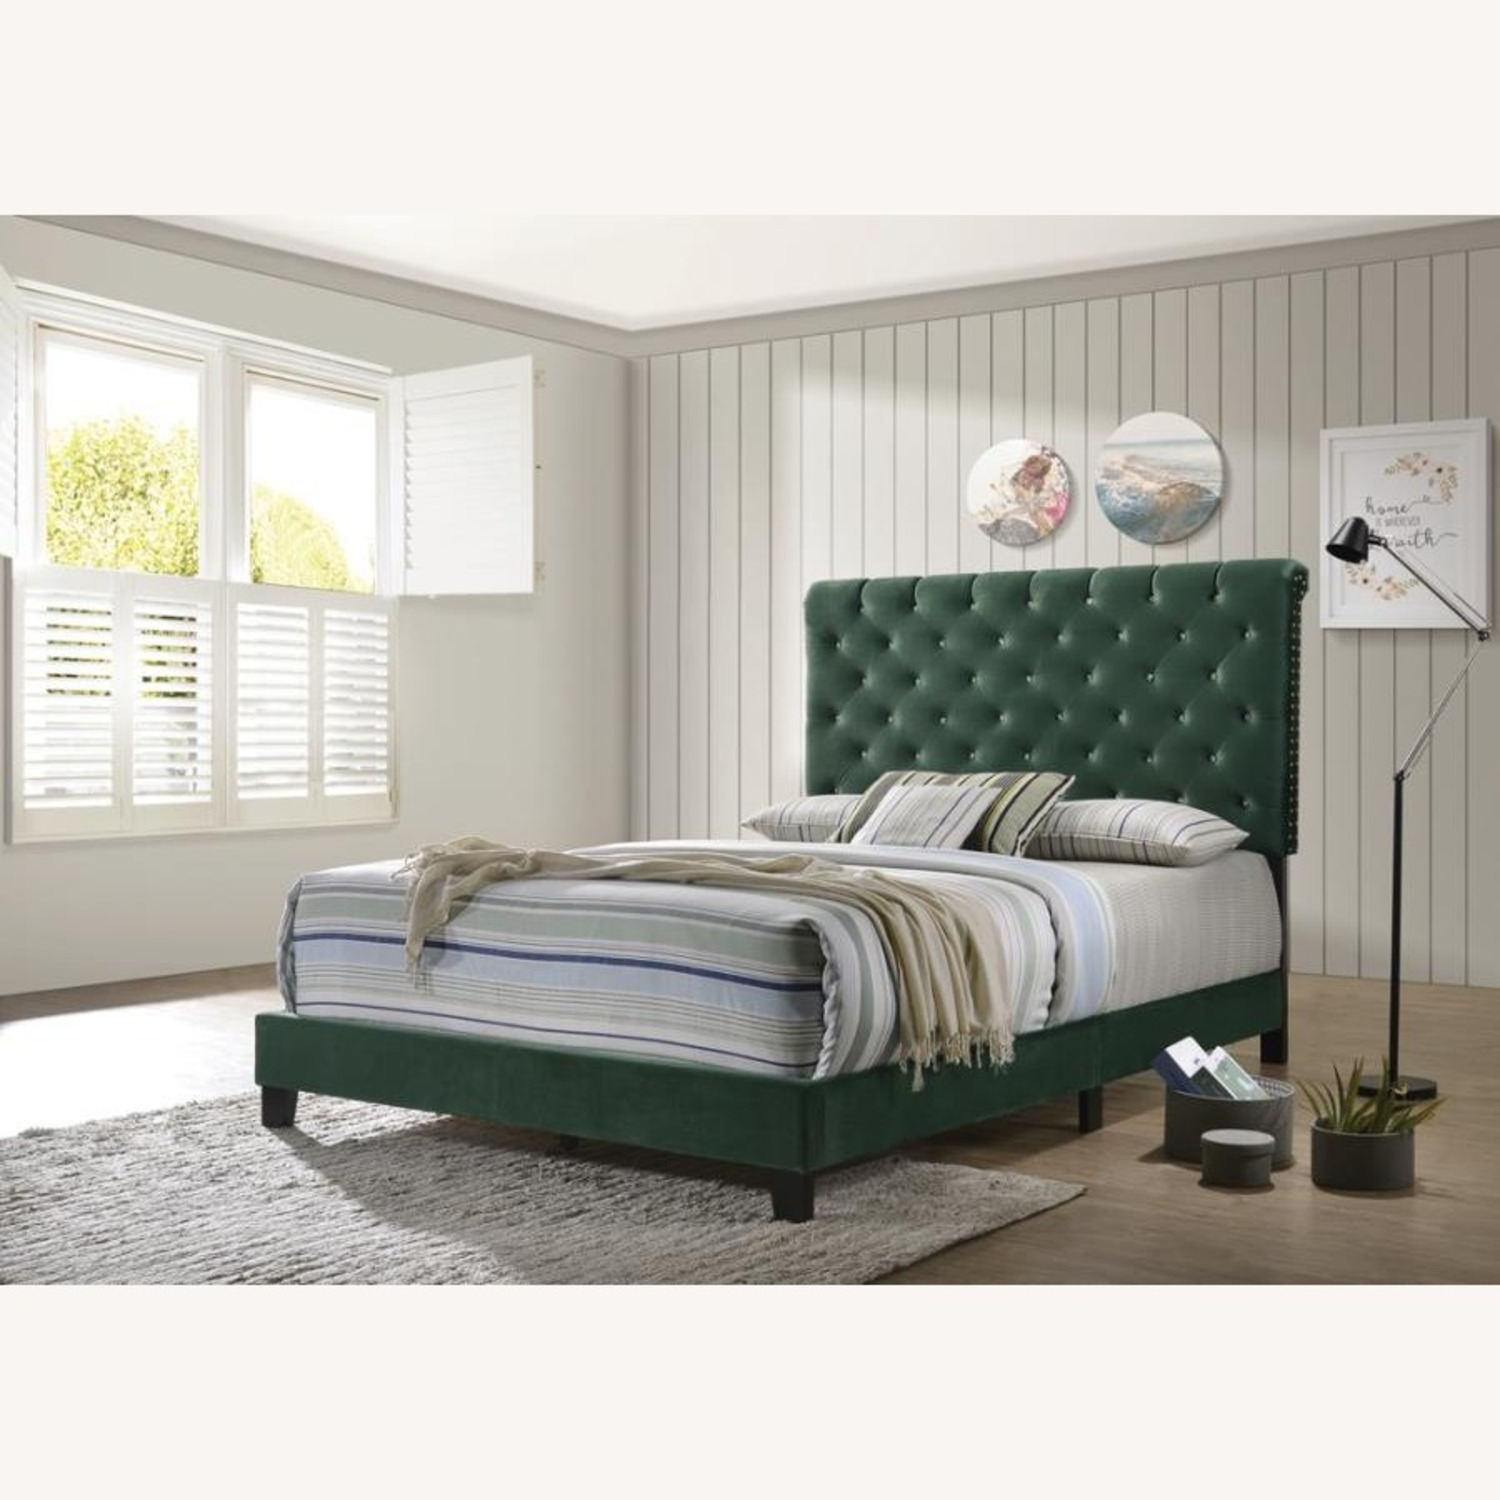 Queen Bed In Green Velvet W/ Faux Crystal Button - image-4